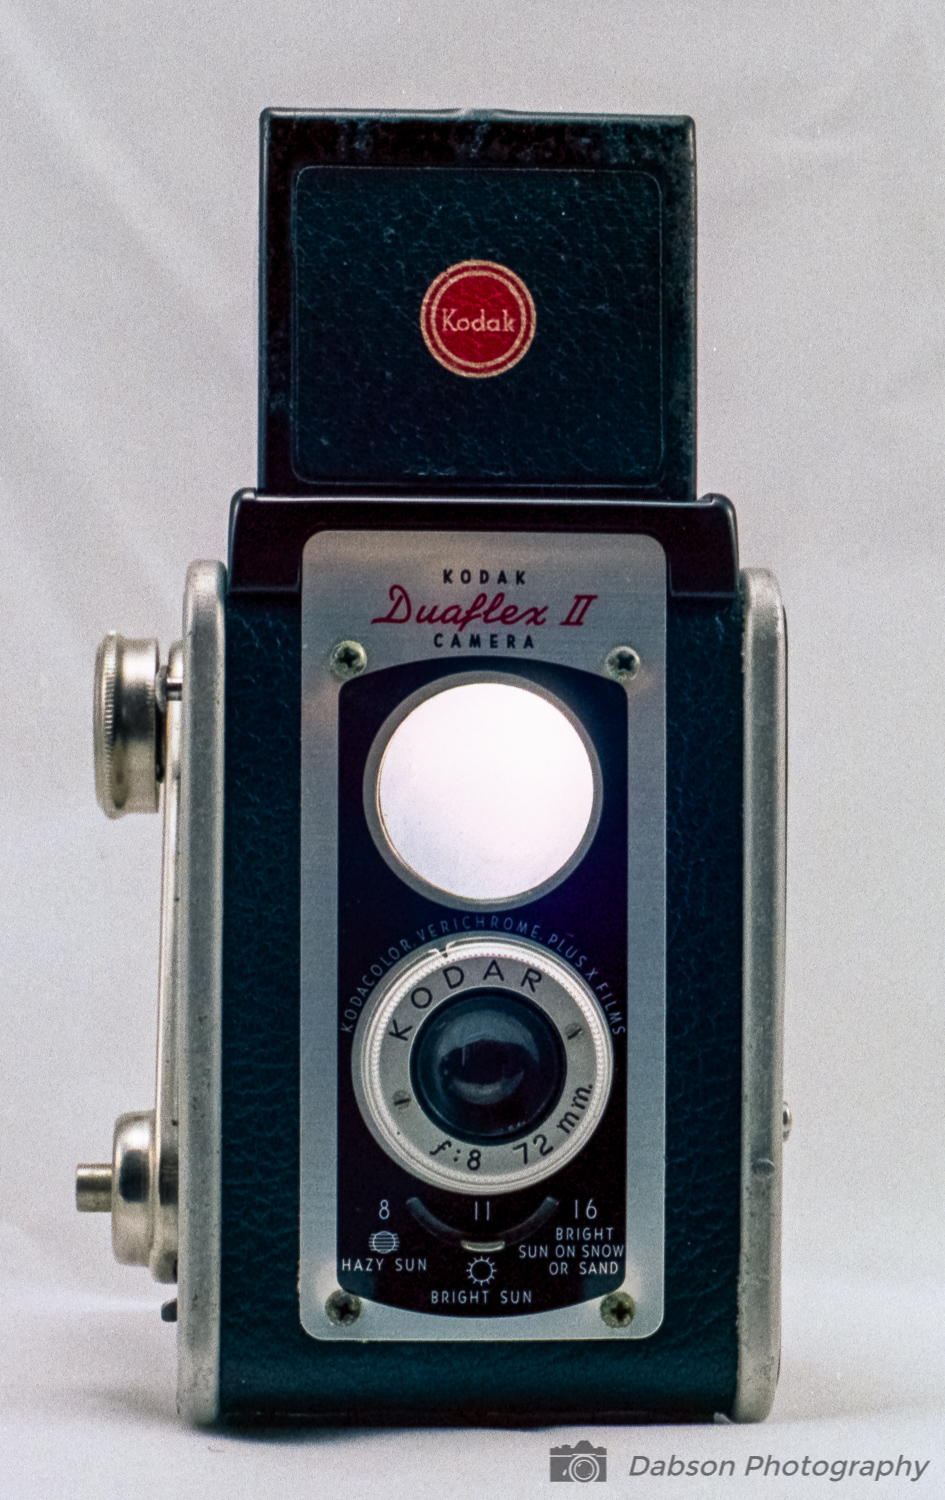 Description - Basically the Duaflex system is a box camera with an expanded view finder.  It does use a separate taking and viewing lens but they are not connected.  The taking lens (bottom) is a zone focus lens.  Focus cannot be seen in the viewfinder.  The viewfinder lens is fixed focus.  It is adjustable from 3.5 feet to Infinity.The taking lens on this model is a KODAR 72mm/f8.  72mm is a fairly standard sized lens for medium format photography.  It equates to roughly 50mm on a 35mm film camera. Aperture on this example of the Duaflex II is adjustable.  Settings include f8, f11 and f16.  The shutter speed is fixed and my research shows the shutter speed to have originally been 1/40 second.  Due to age, shutter speeds on these older cameras may vary.  After working the shutter several times, these cameras must be film tested for the real results to be known.